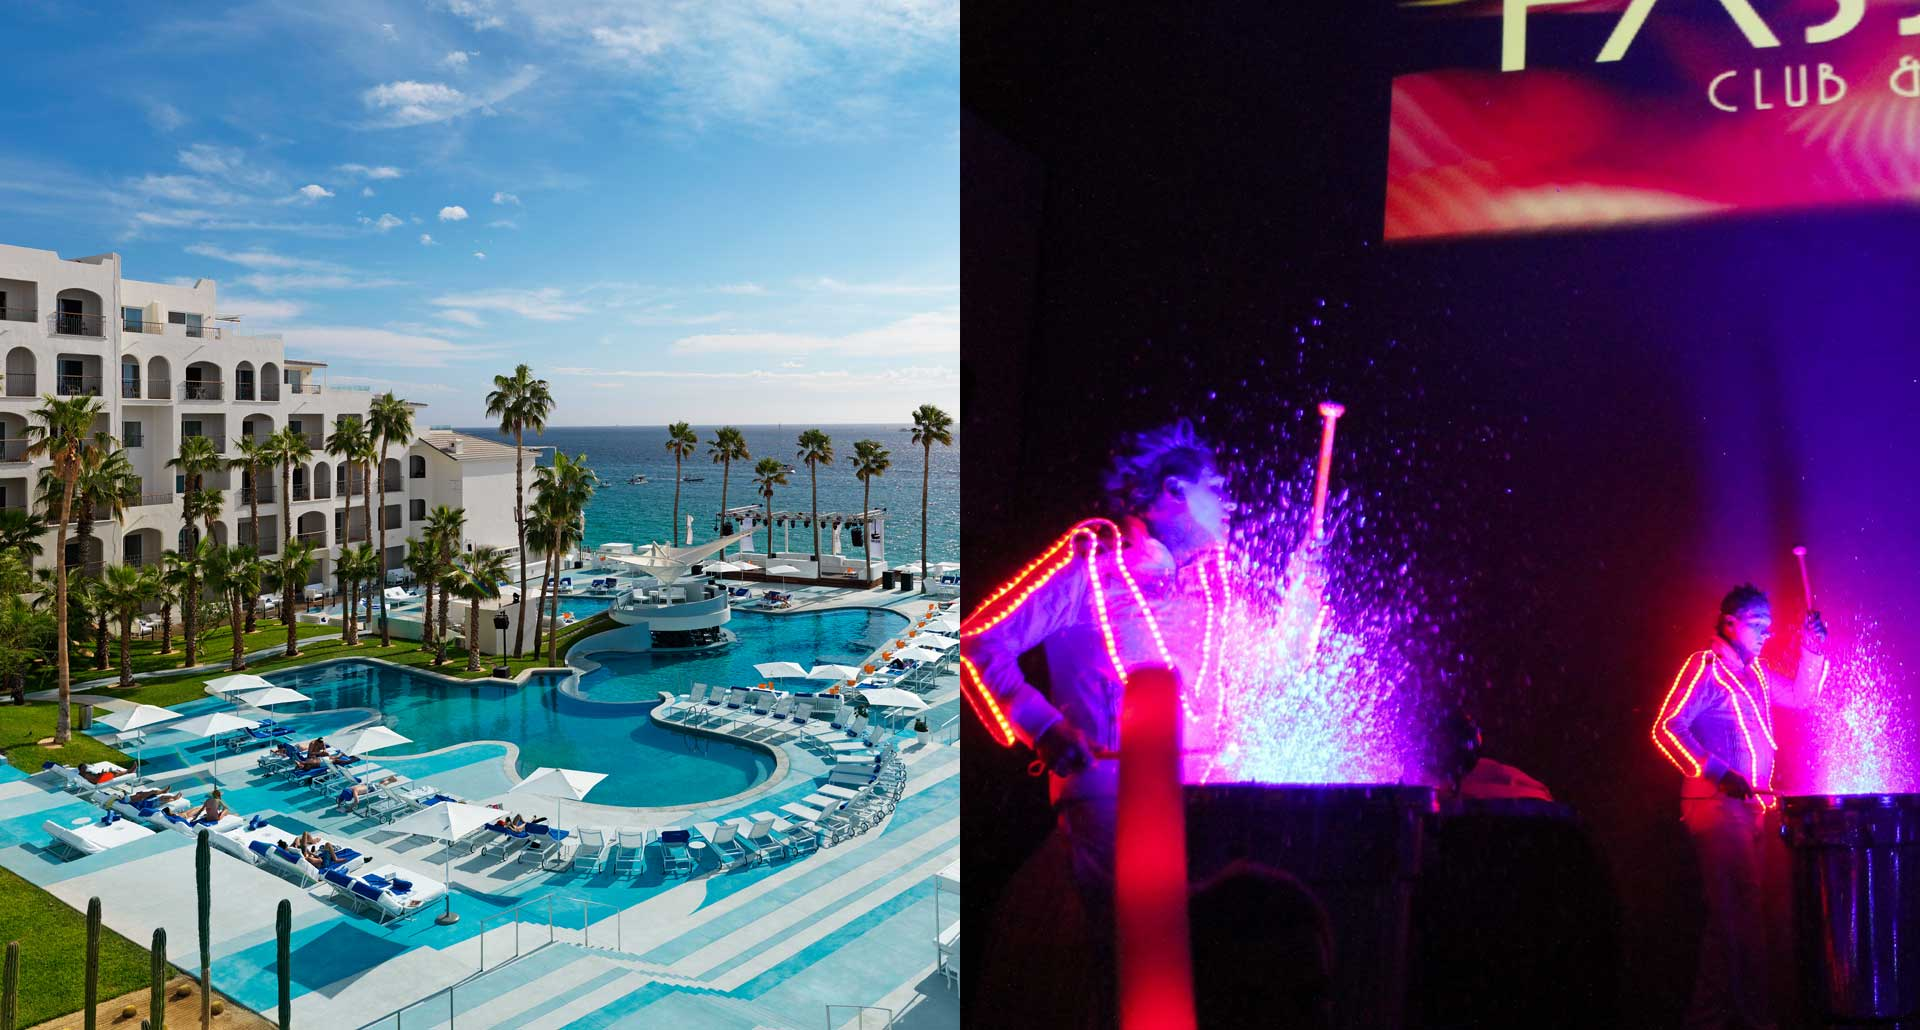 ME Cabo - best nightlife boutique hotel in Los Cabos Mexico